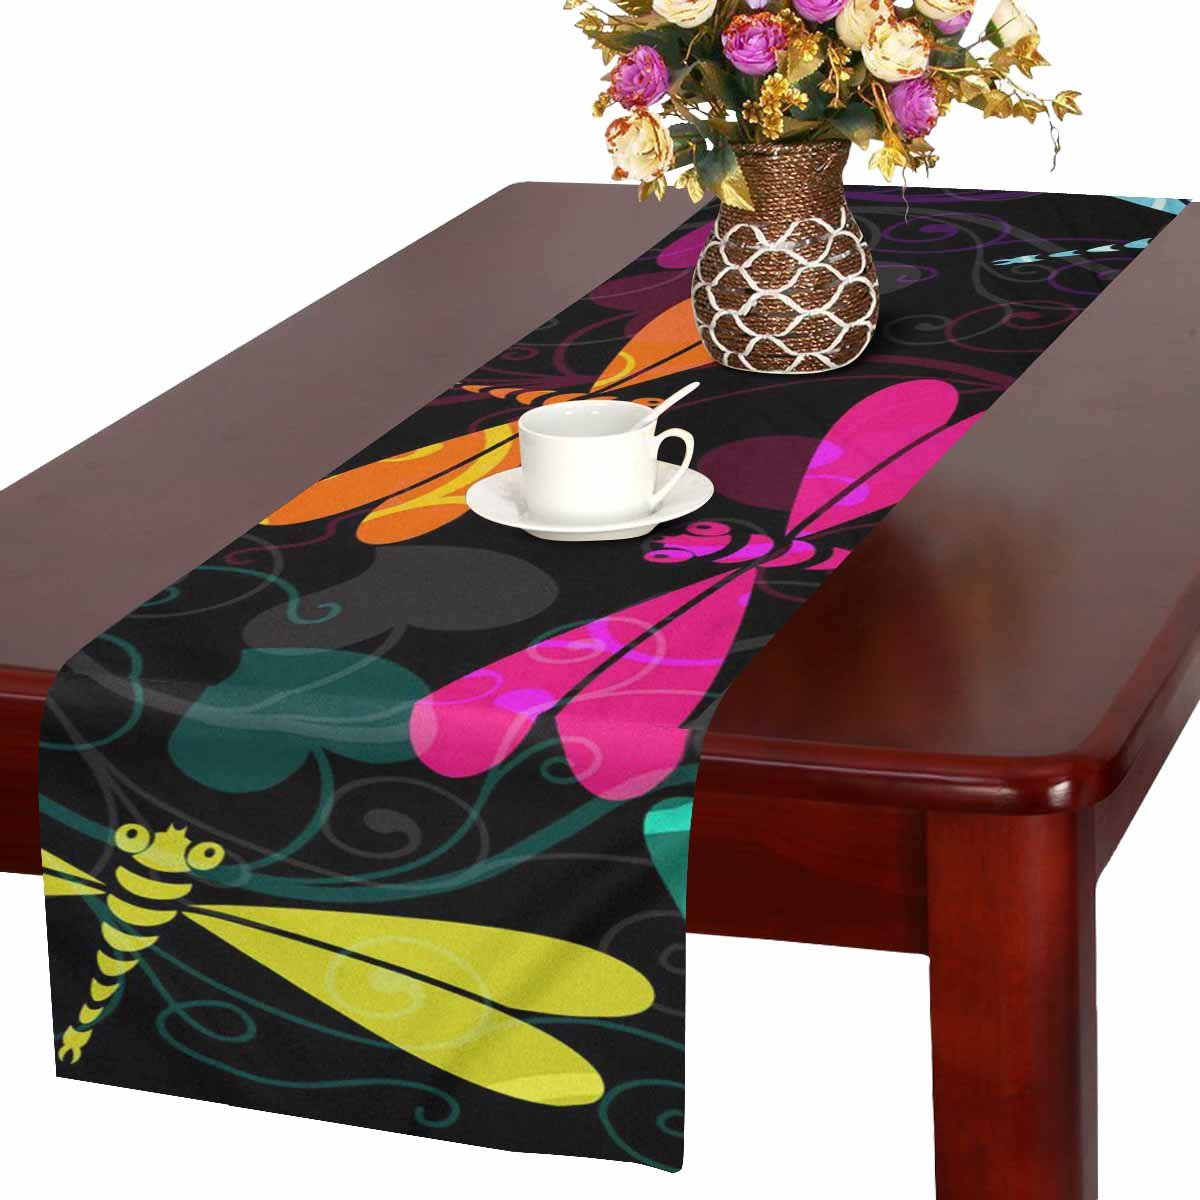 InterestPrint Table Runner 16in72in Print with Dark Colorful Dragonfly